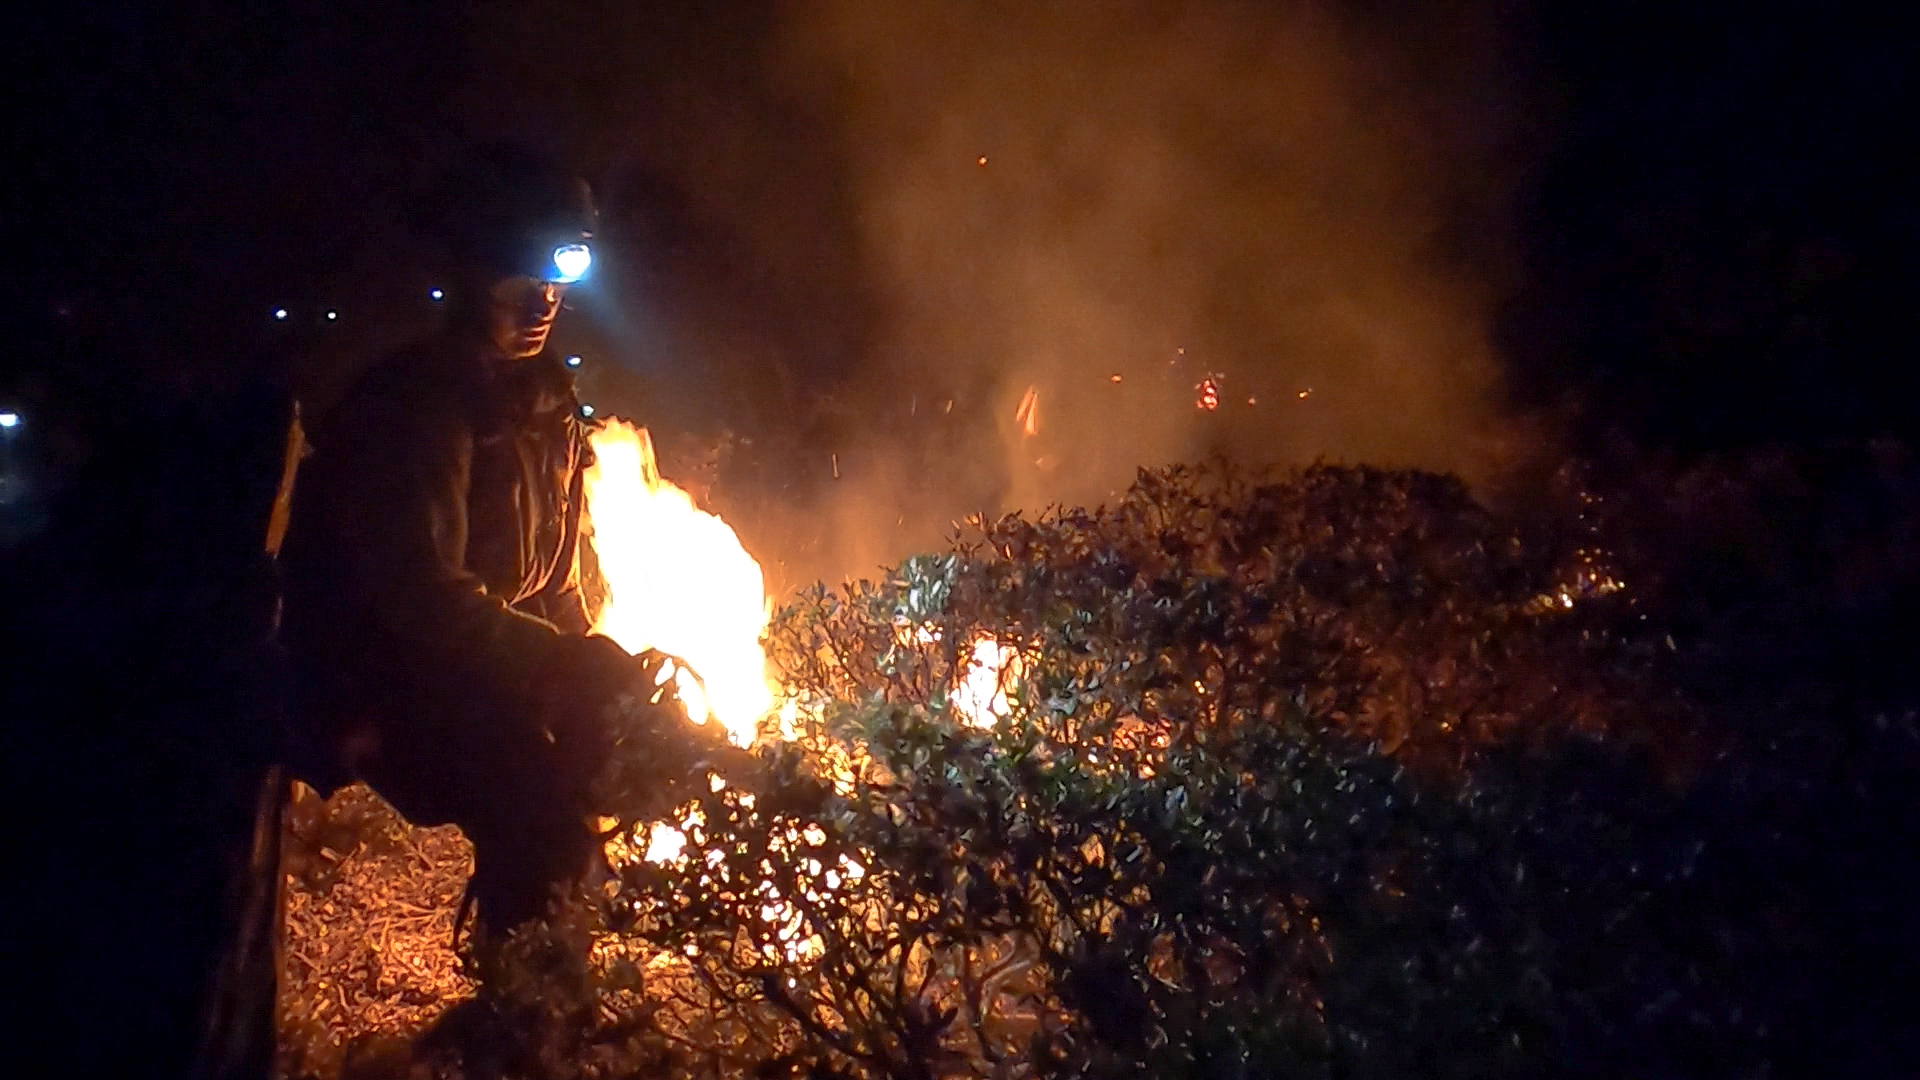 firefighter with head light illuminated by flames uses chainsaw